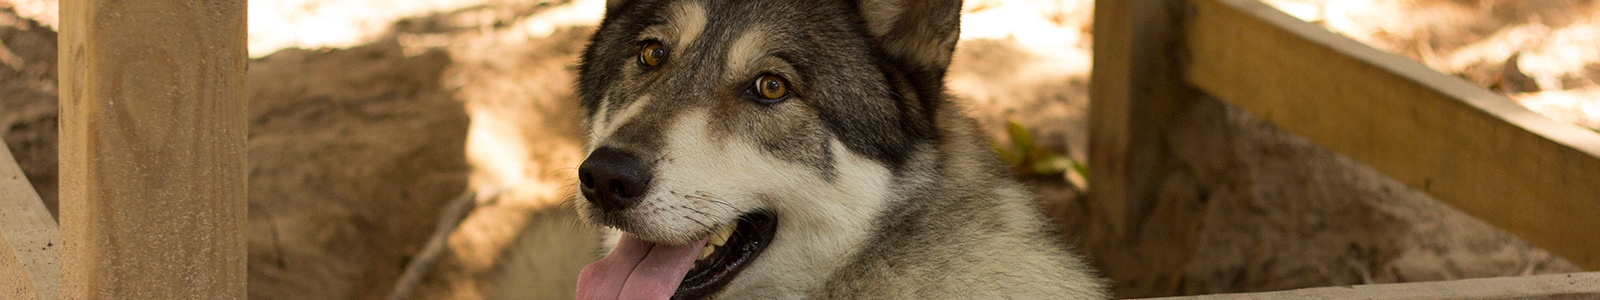 Texas Wolfdog Project Joel Renner Header Image